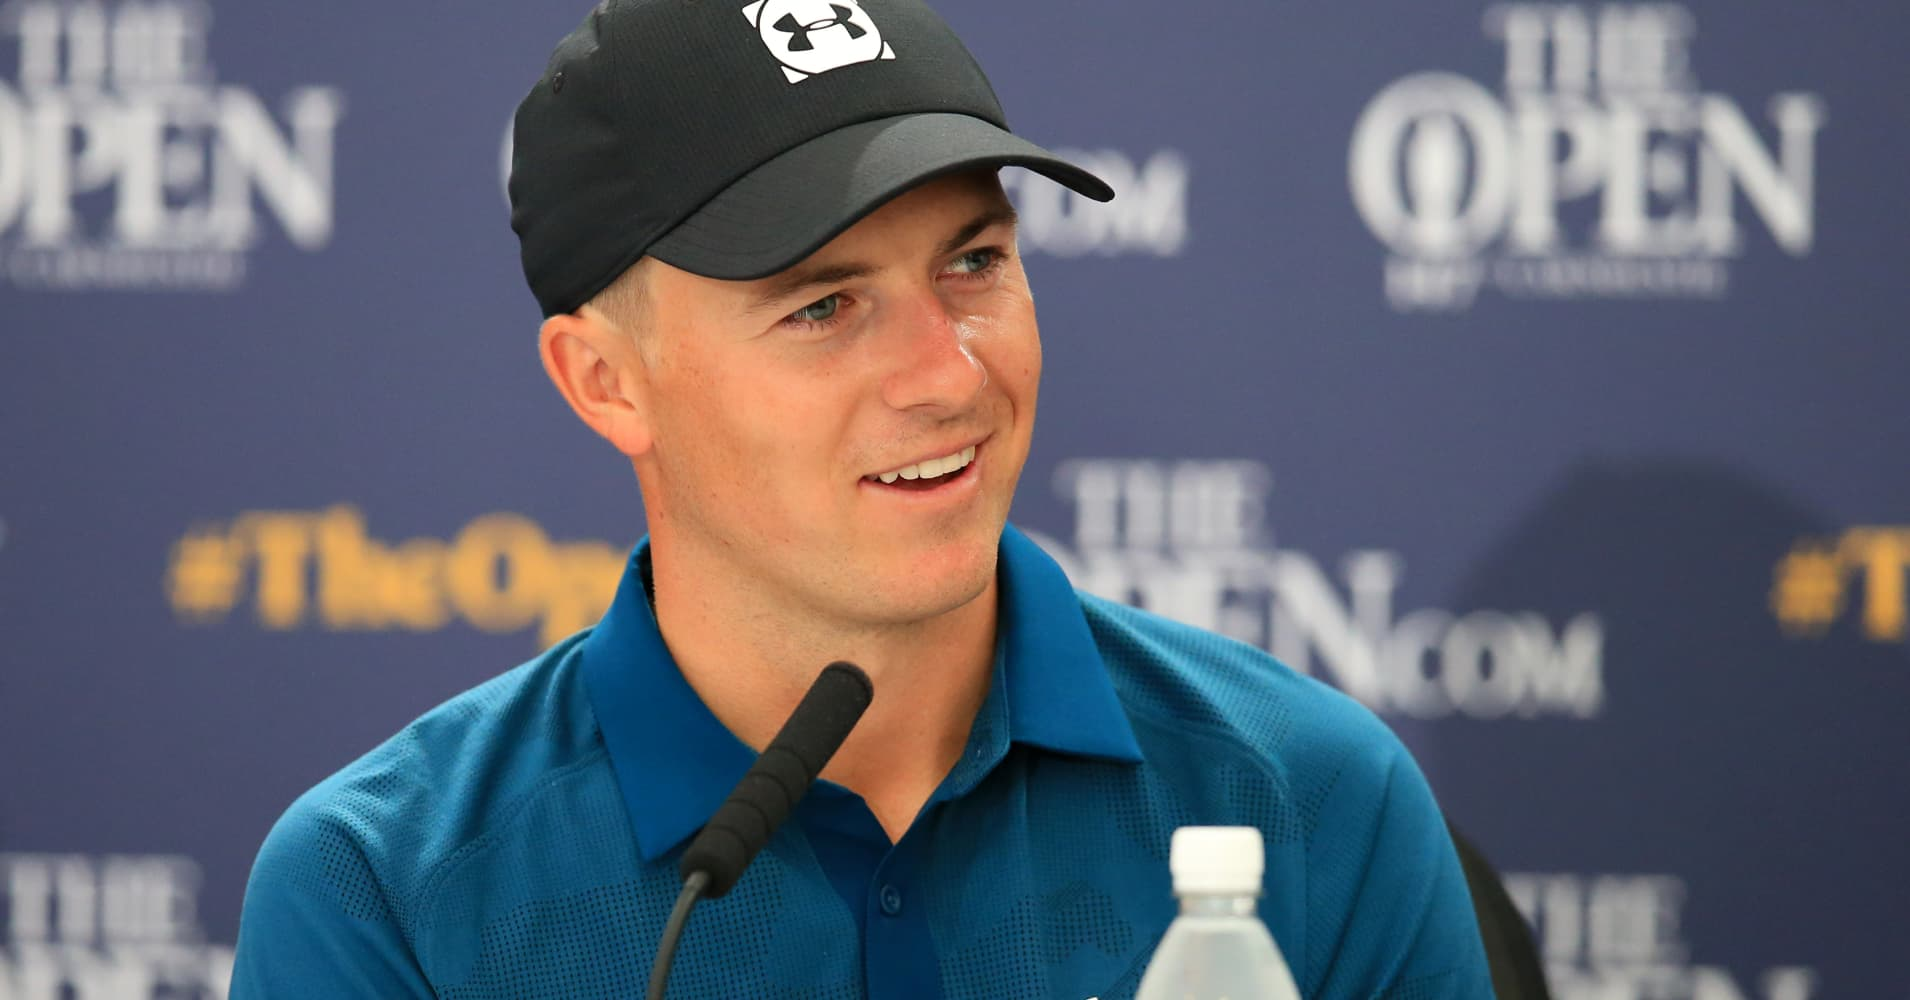 Jordan Spieth answers questions in his post round press conference at the 147th Open at Carnoustie